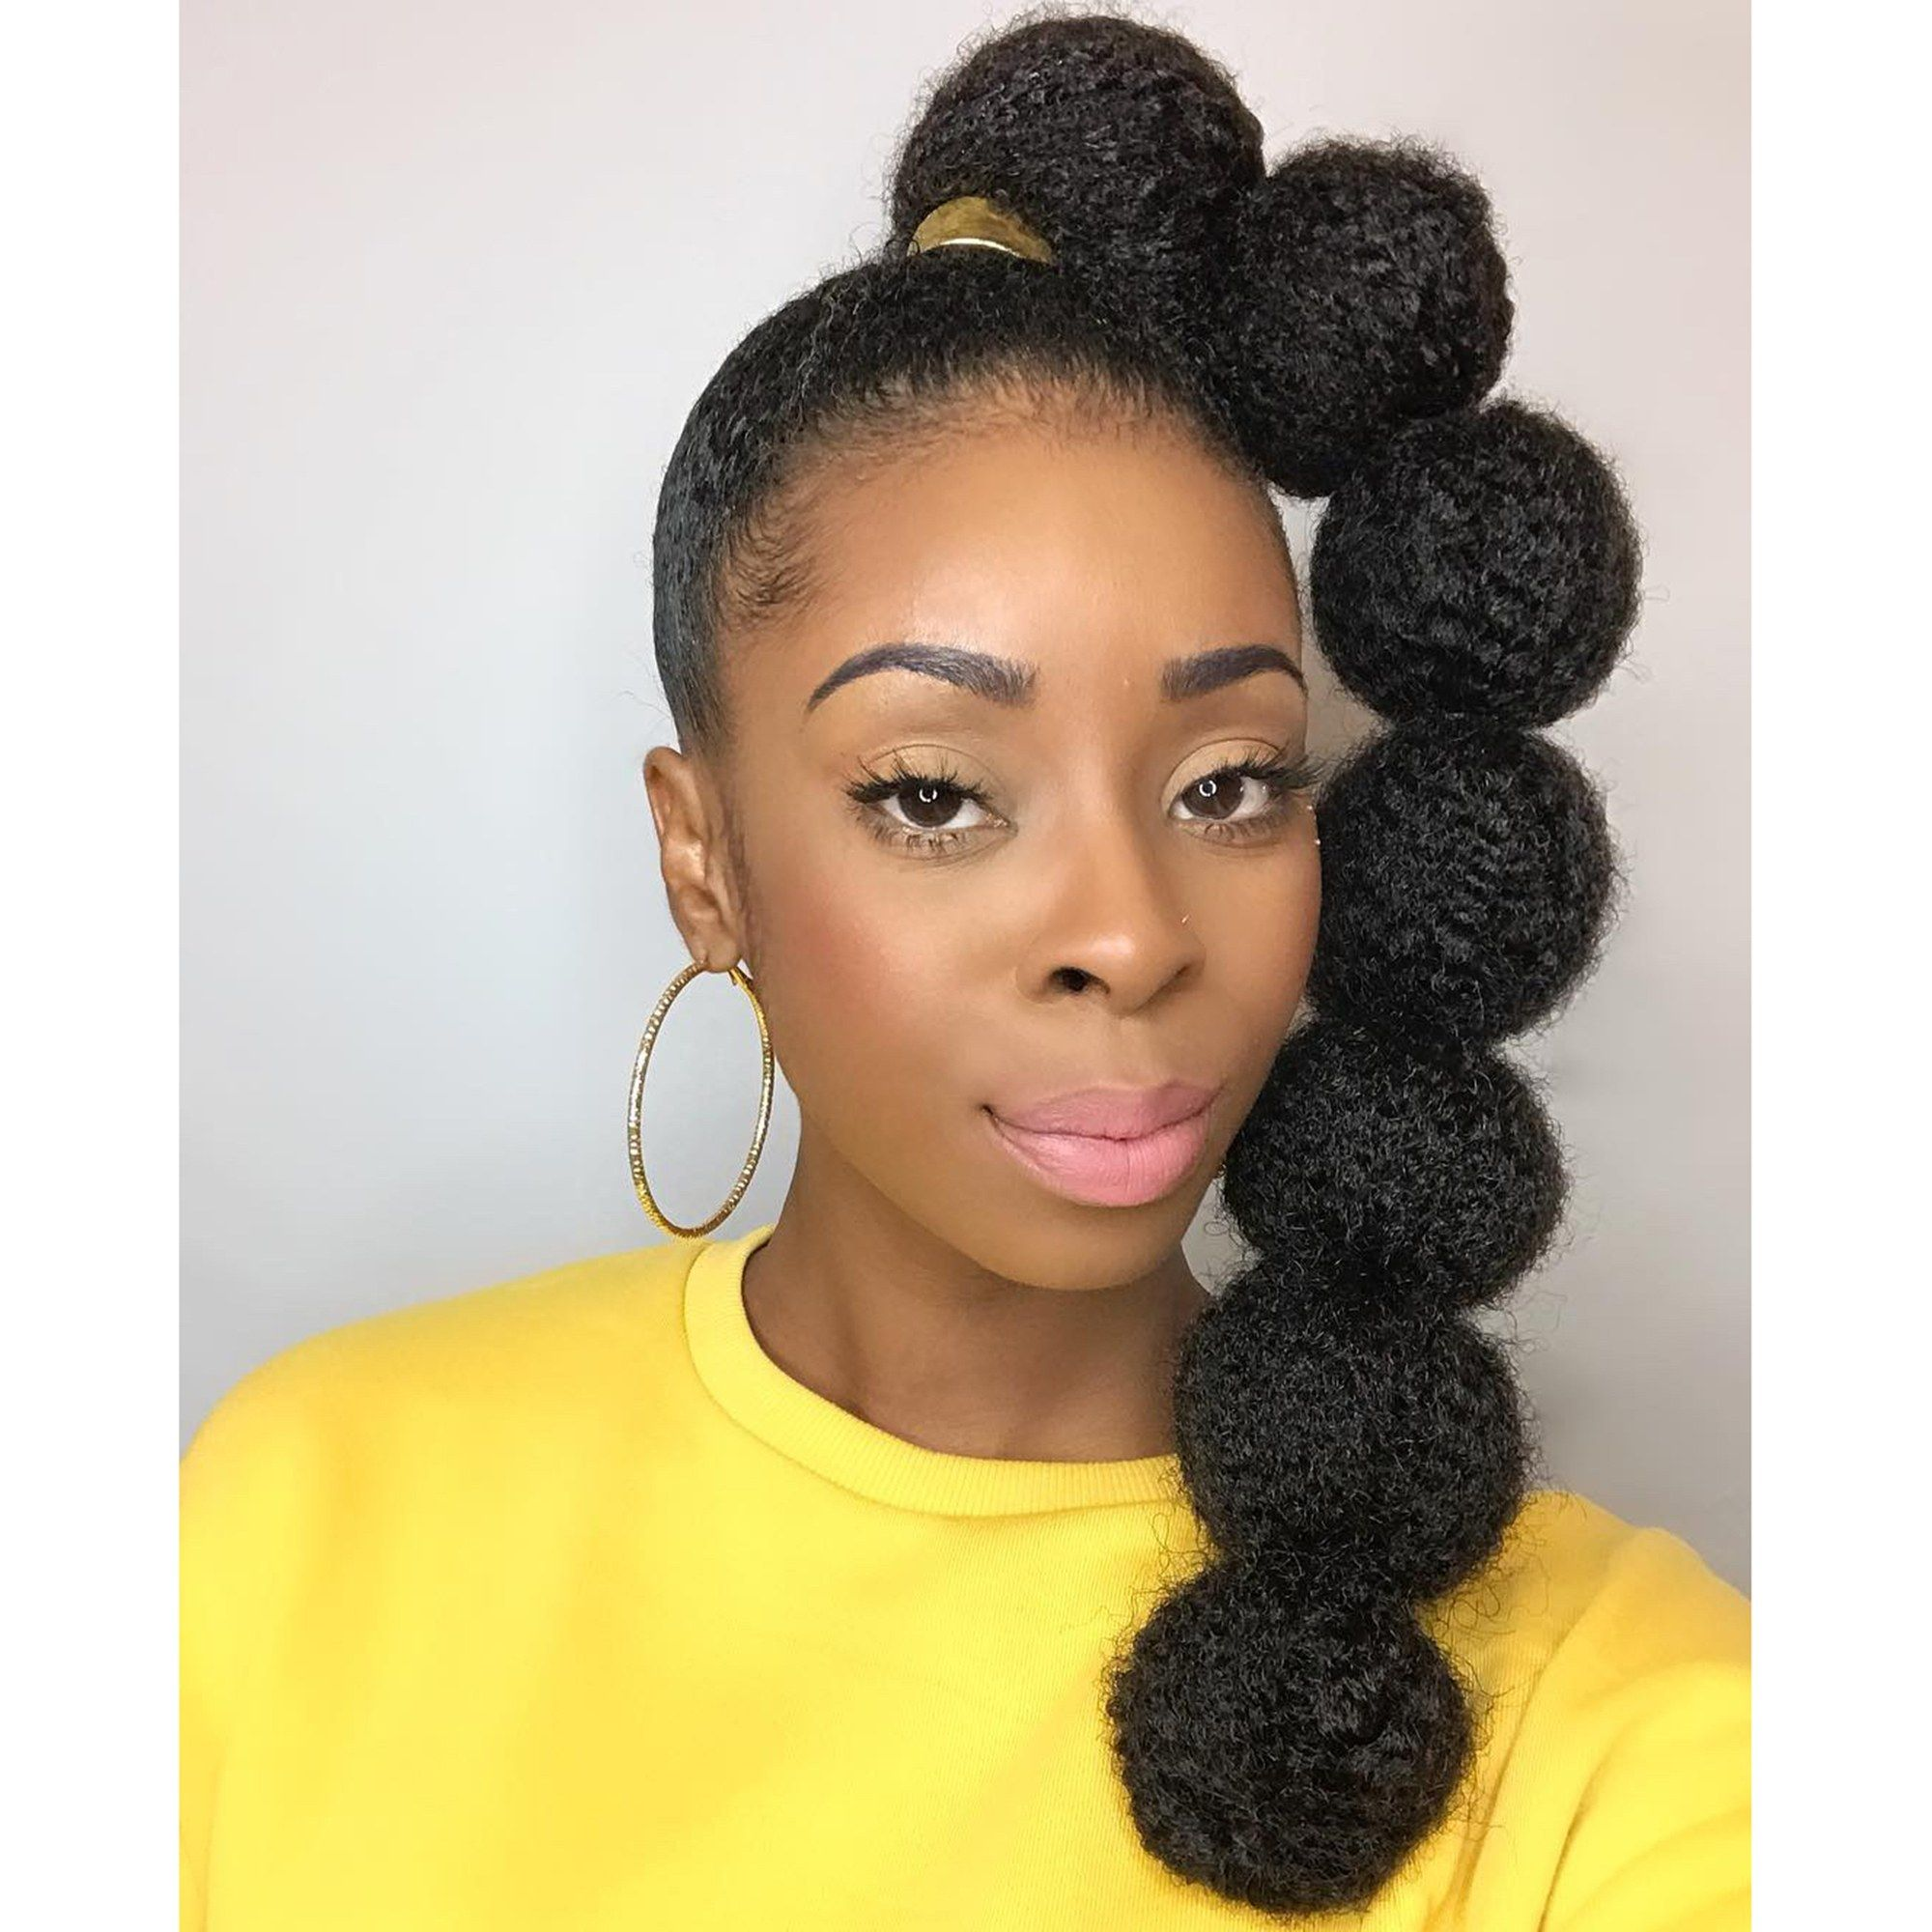 Afro Puff Bubble Ponytails Are Trending On Instagram High